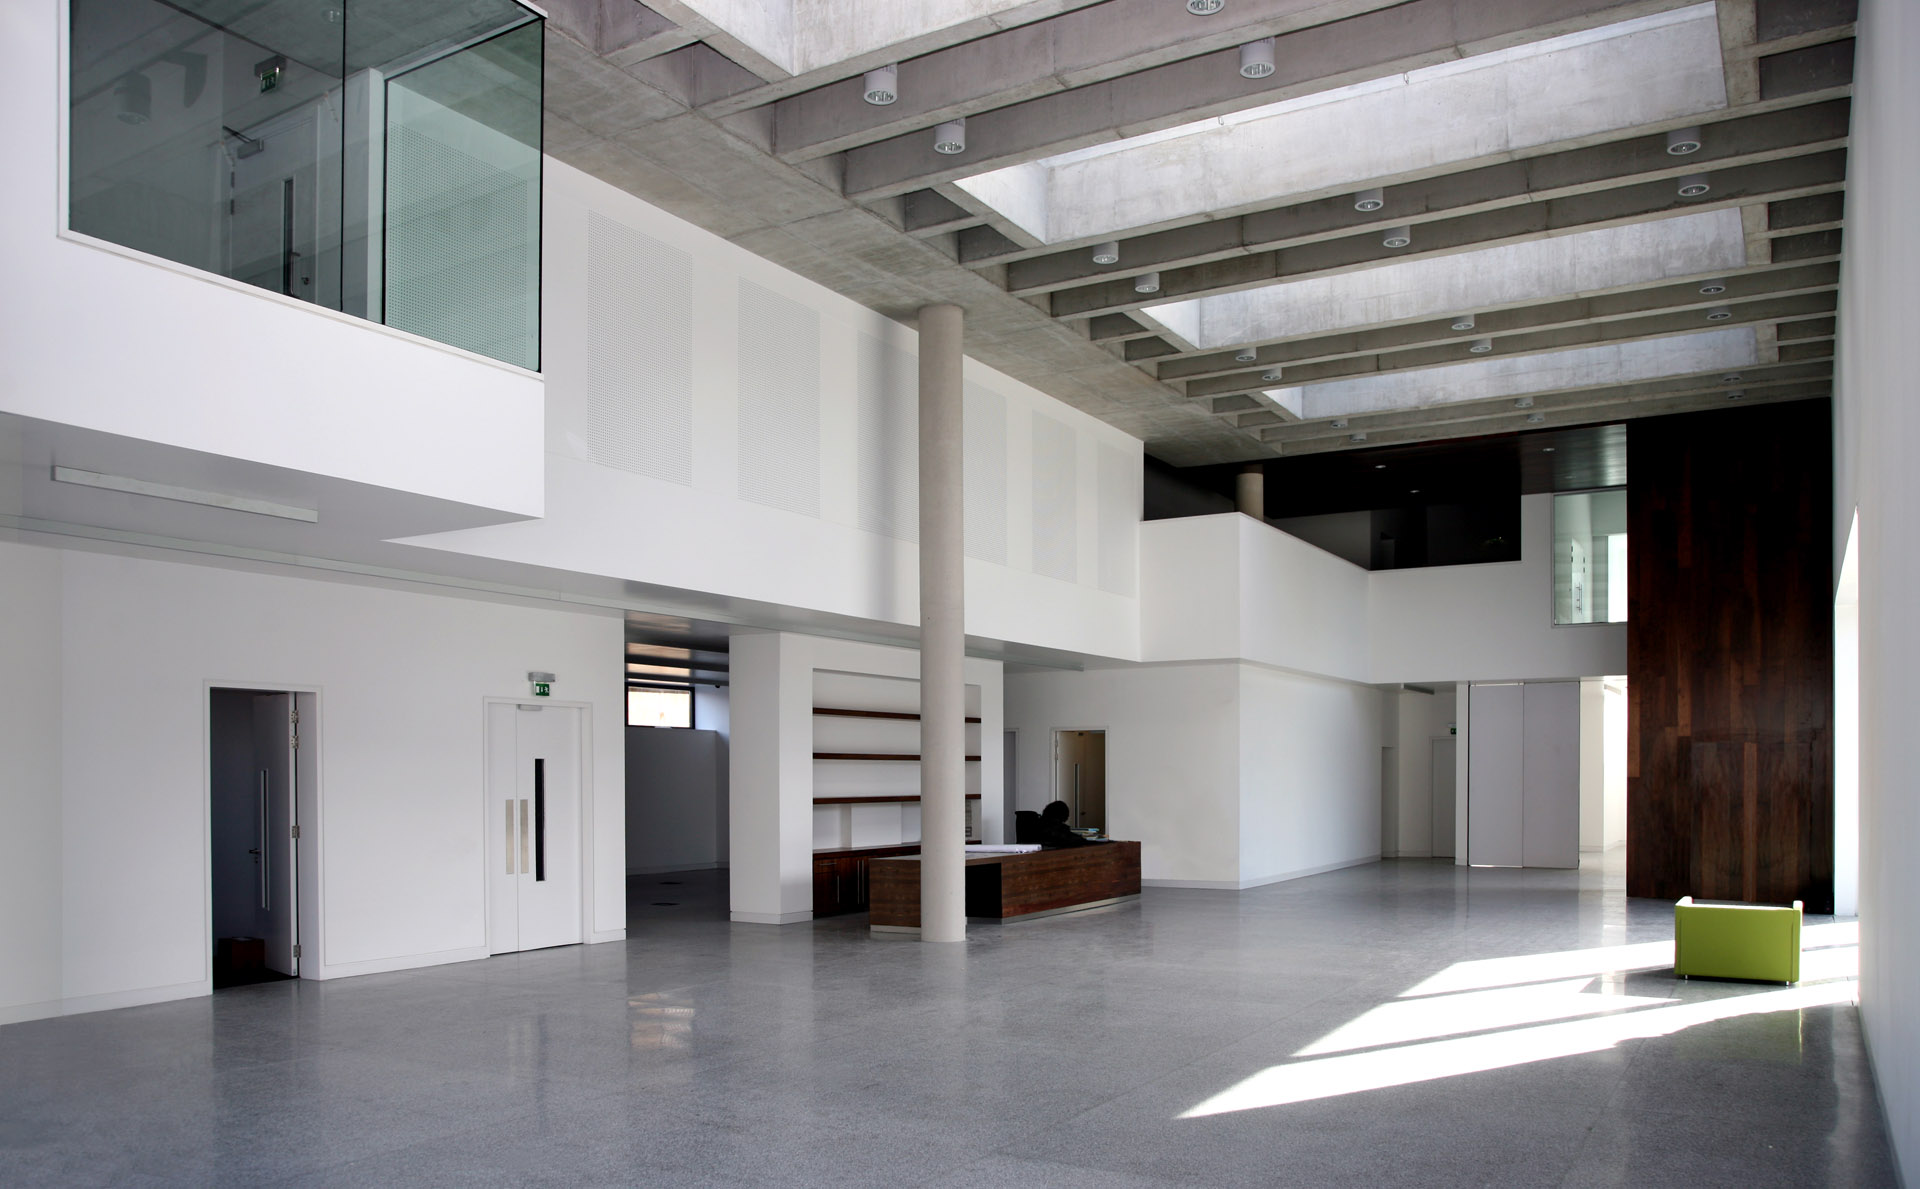 Clones Library and County Library HQ interior before fit-out. The rooflights open automatically as a key part of the natural ventilation and sustainability strategy.